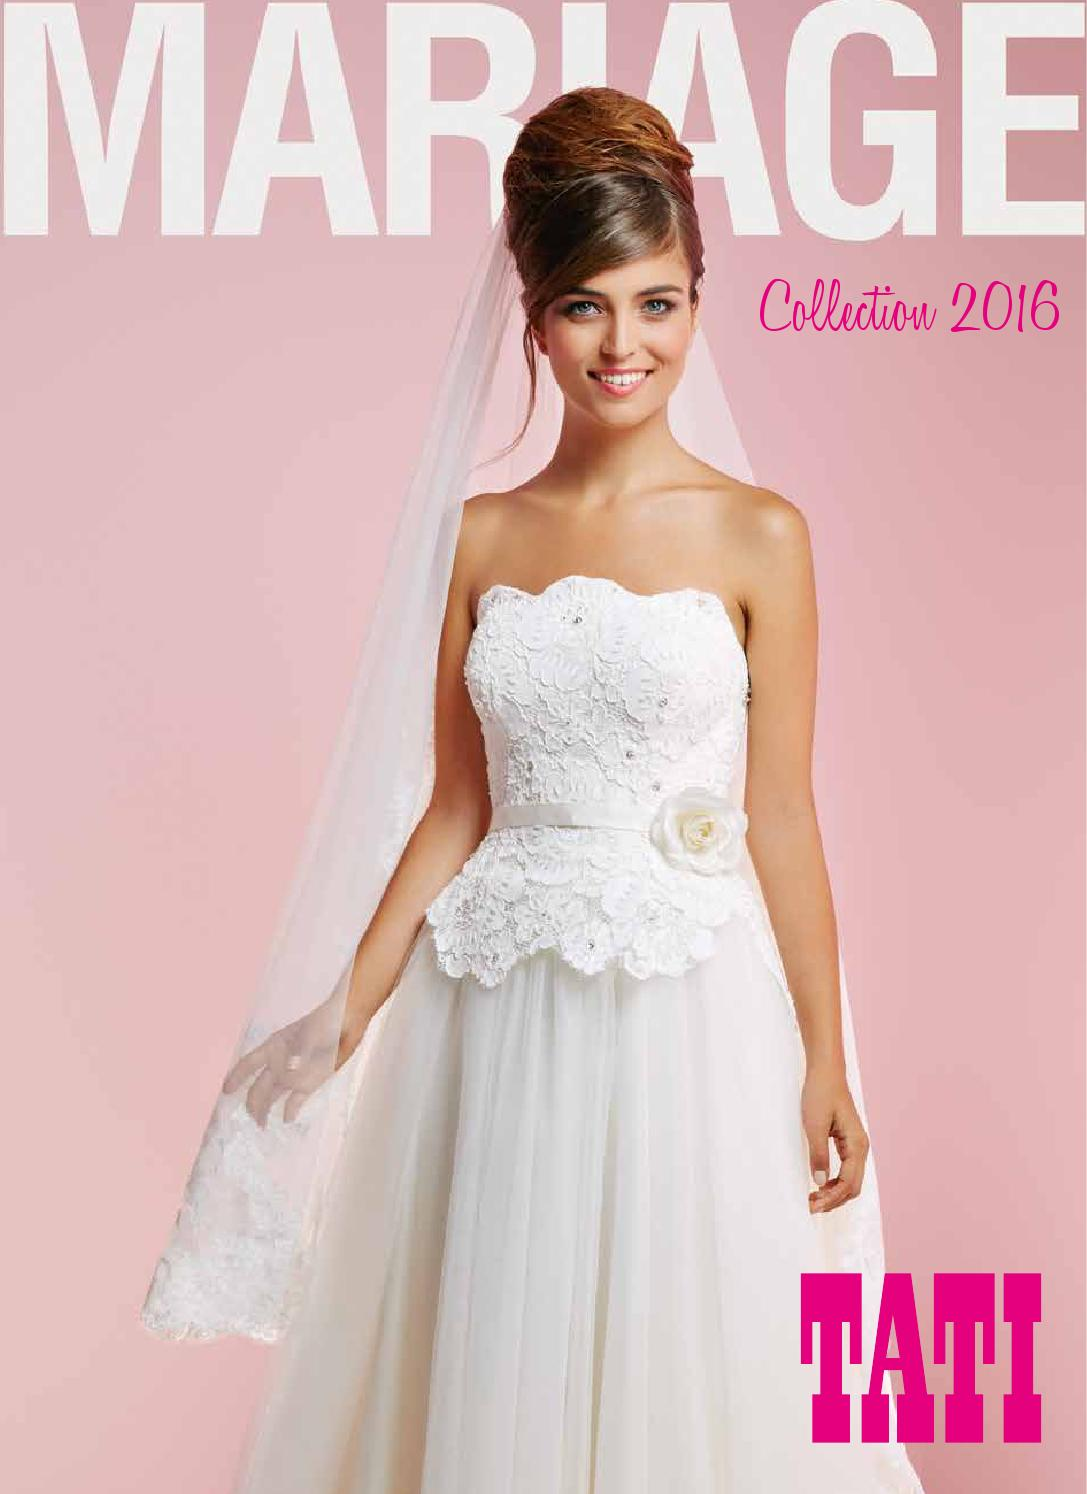 tati mariage 2016 by le site du mariage issuu - Tatie Mariage Magasin